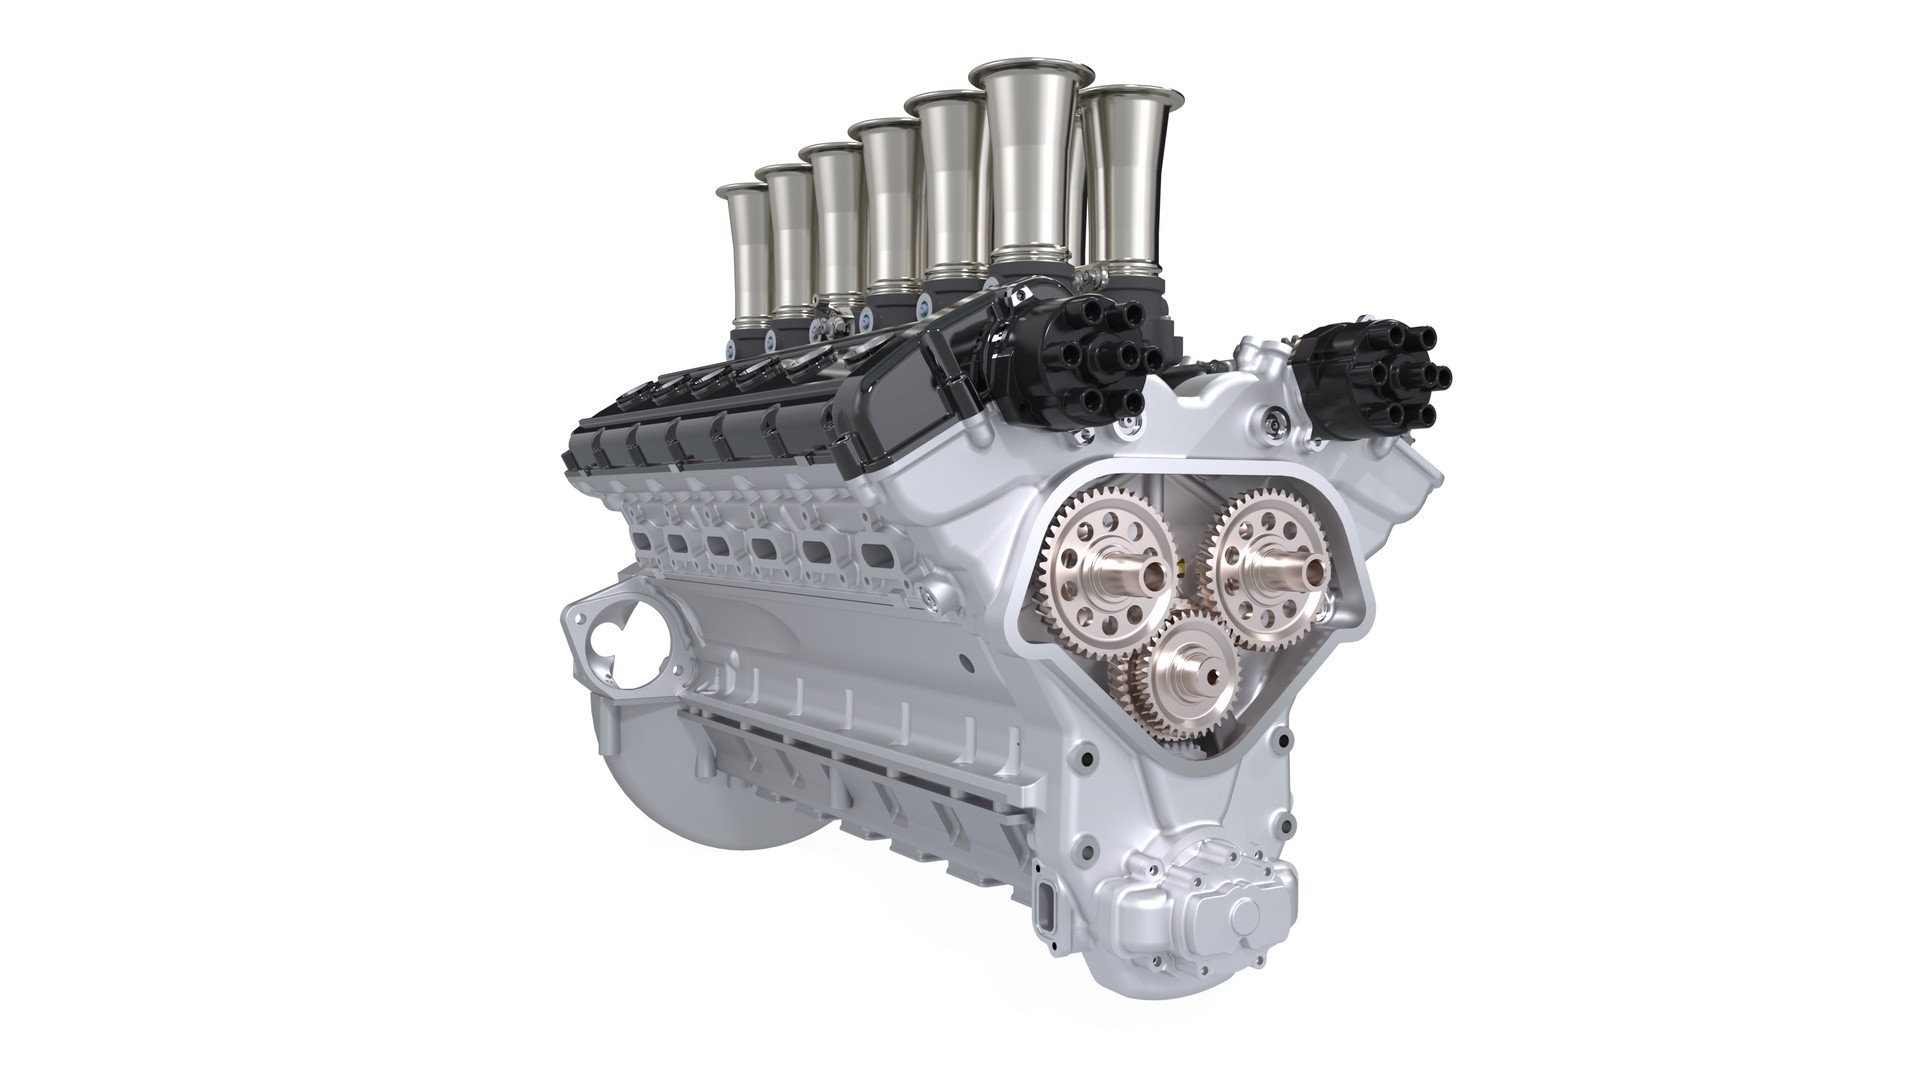 6.-GTO-Engineering-Squalo-V12-engine-overview-white-background